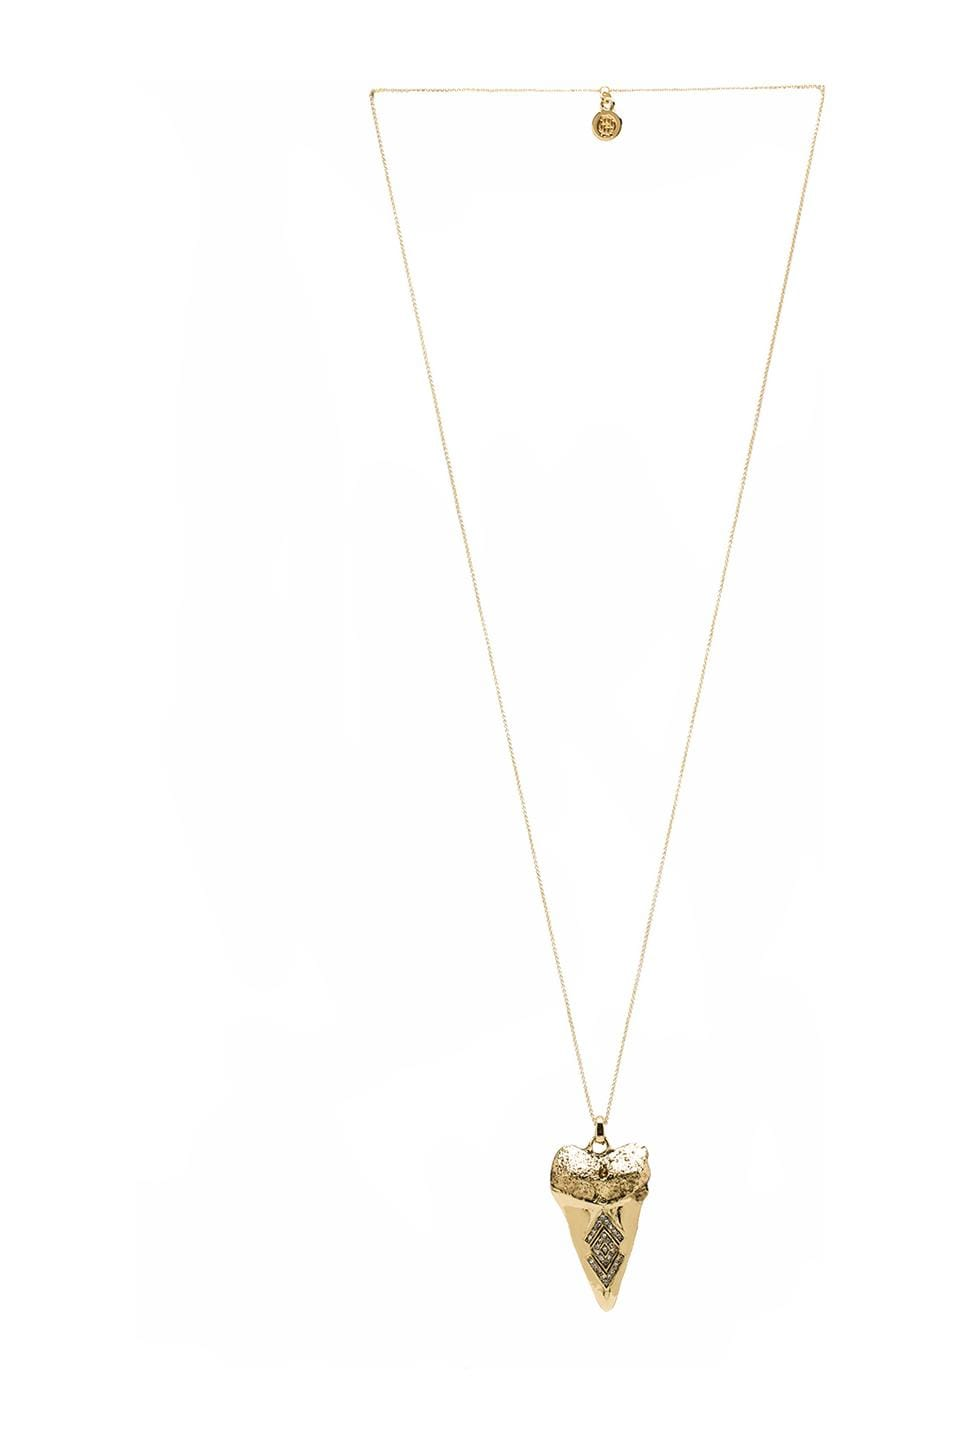 House of Harlow Tribal Tooth Pendant Necklace in Gold